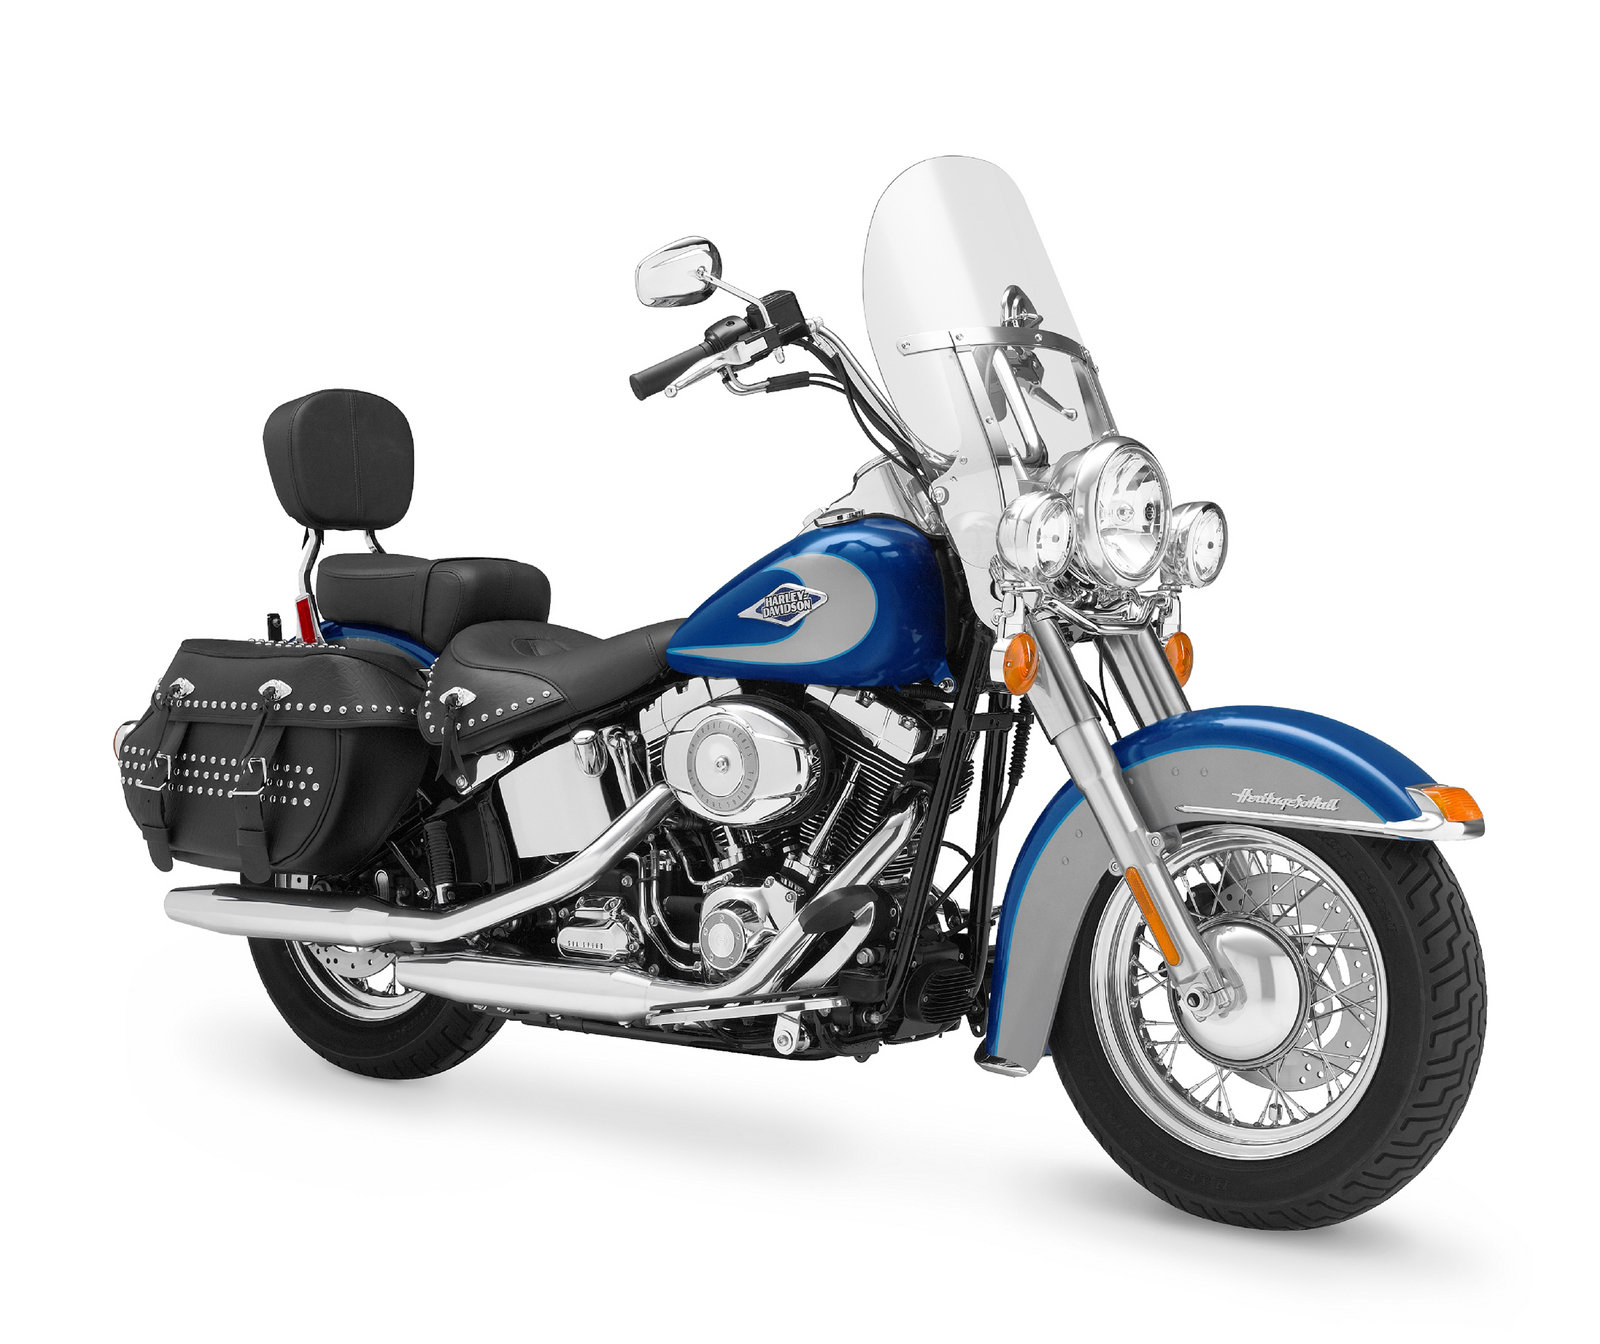 2006 Harley Softail Wiring Diagram 2009 Harley Davidson Flstc Heritage Softail Classic Review